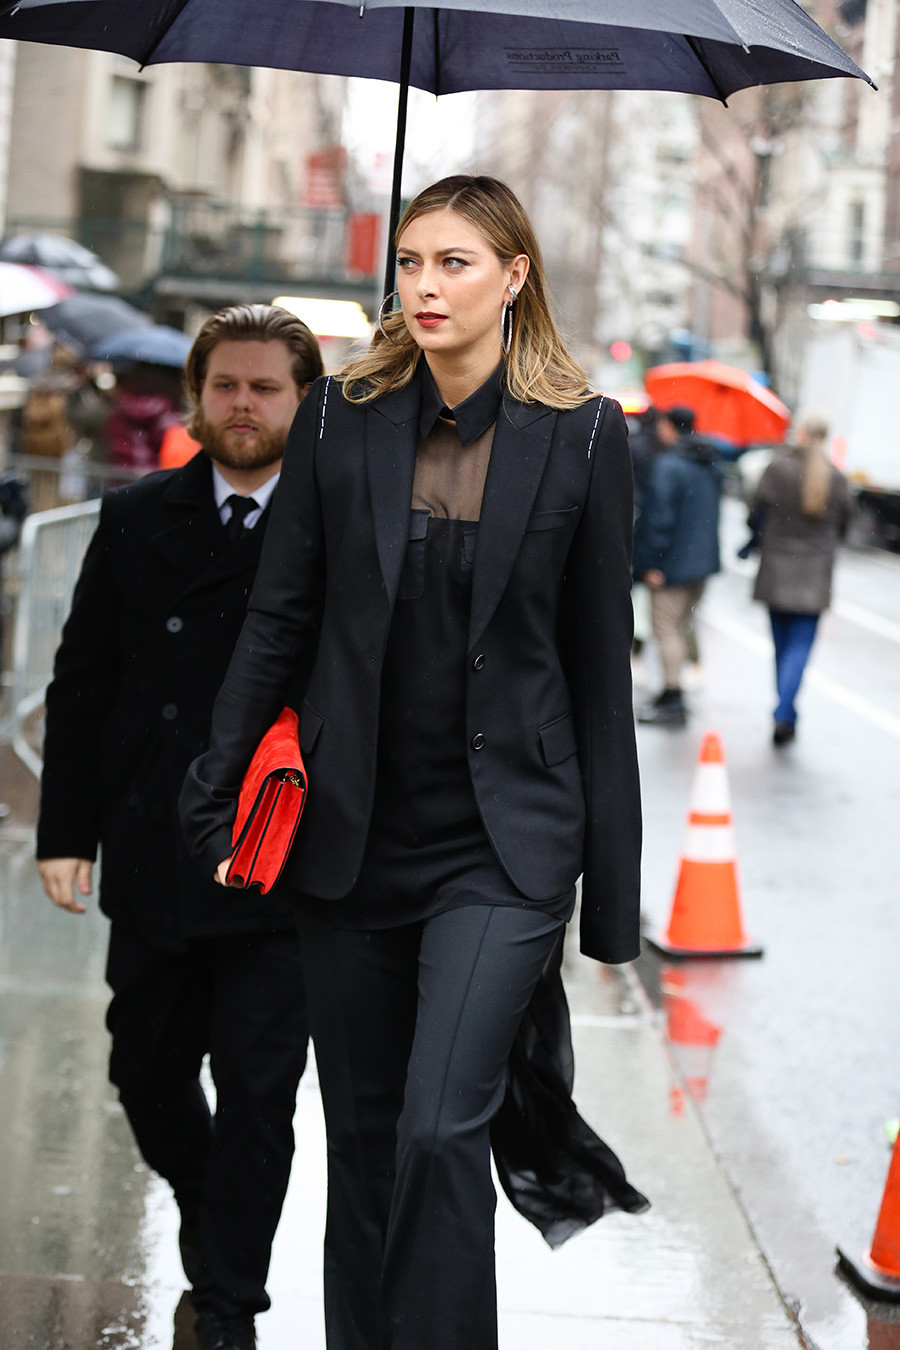 Maria Sharapova is seen outside of the Vera Wang show during New York Fashion Week on February 11, 2020 in New York City